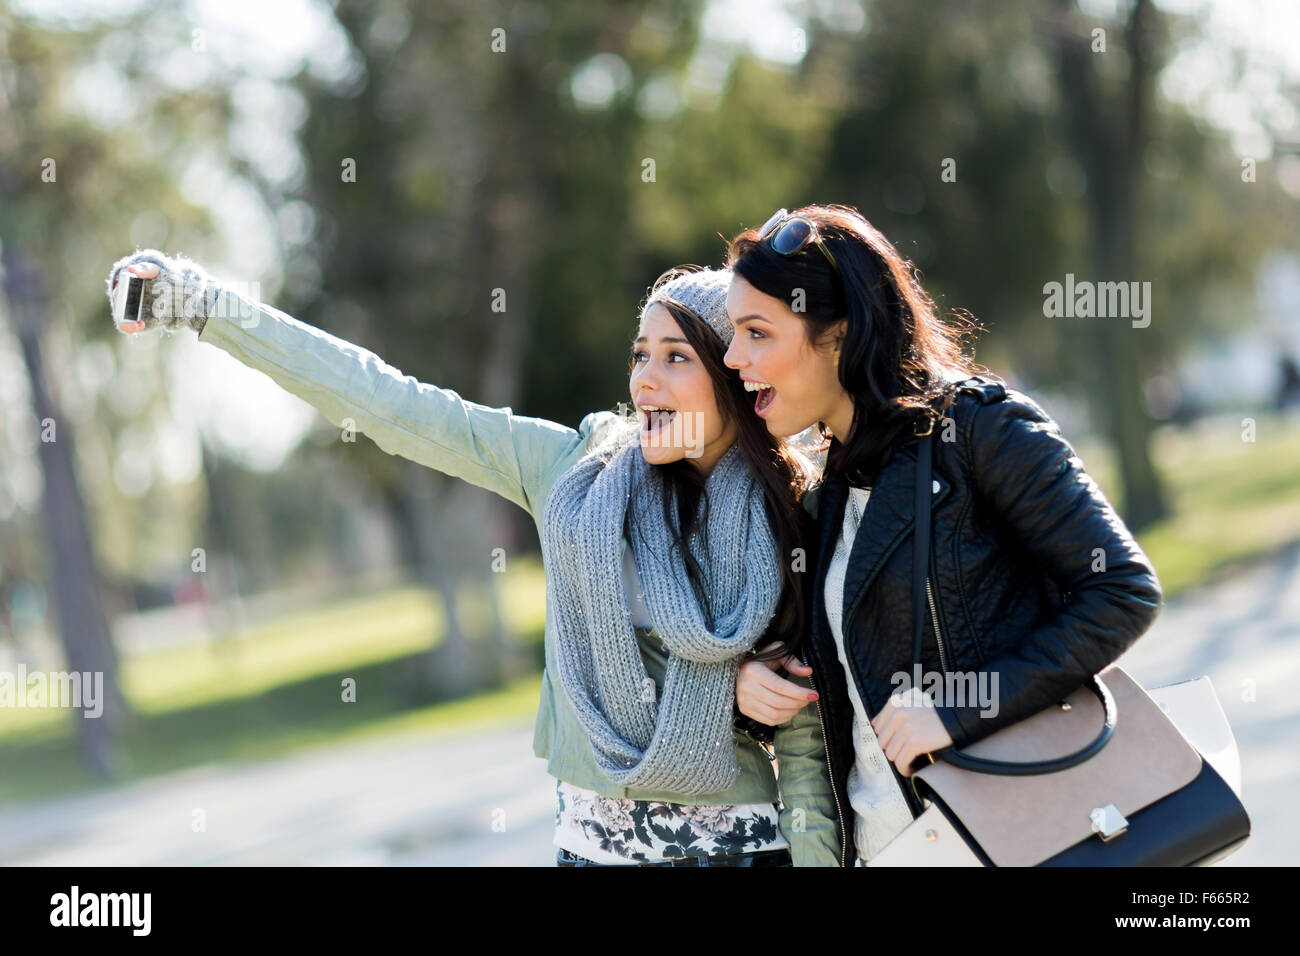 Two young women taking a selfie of themselves on a sunny day - Stock Image